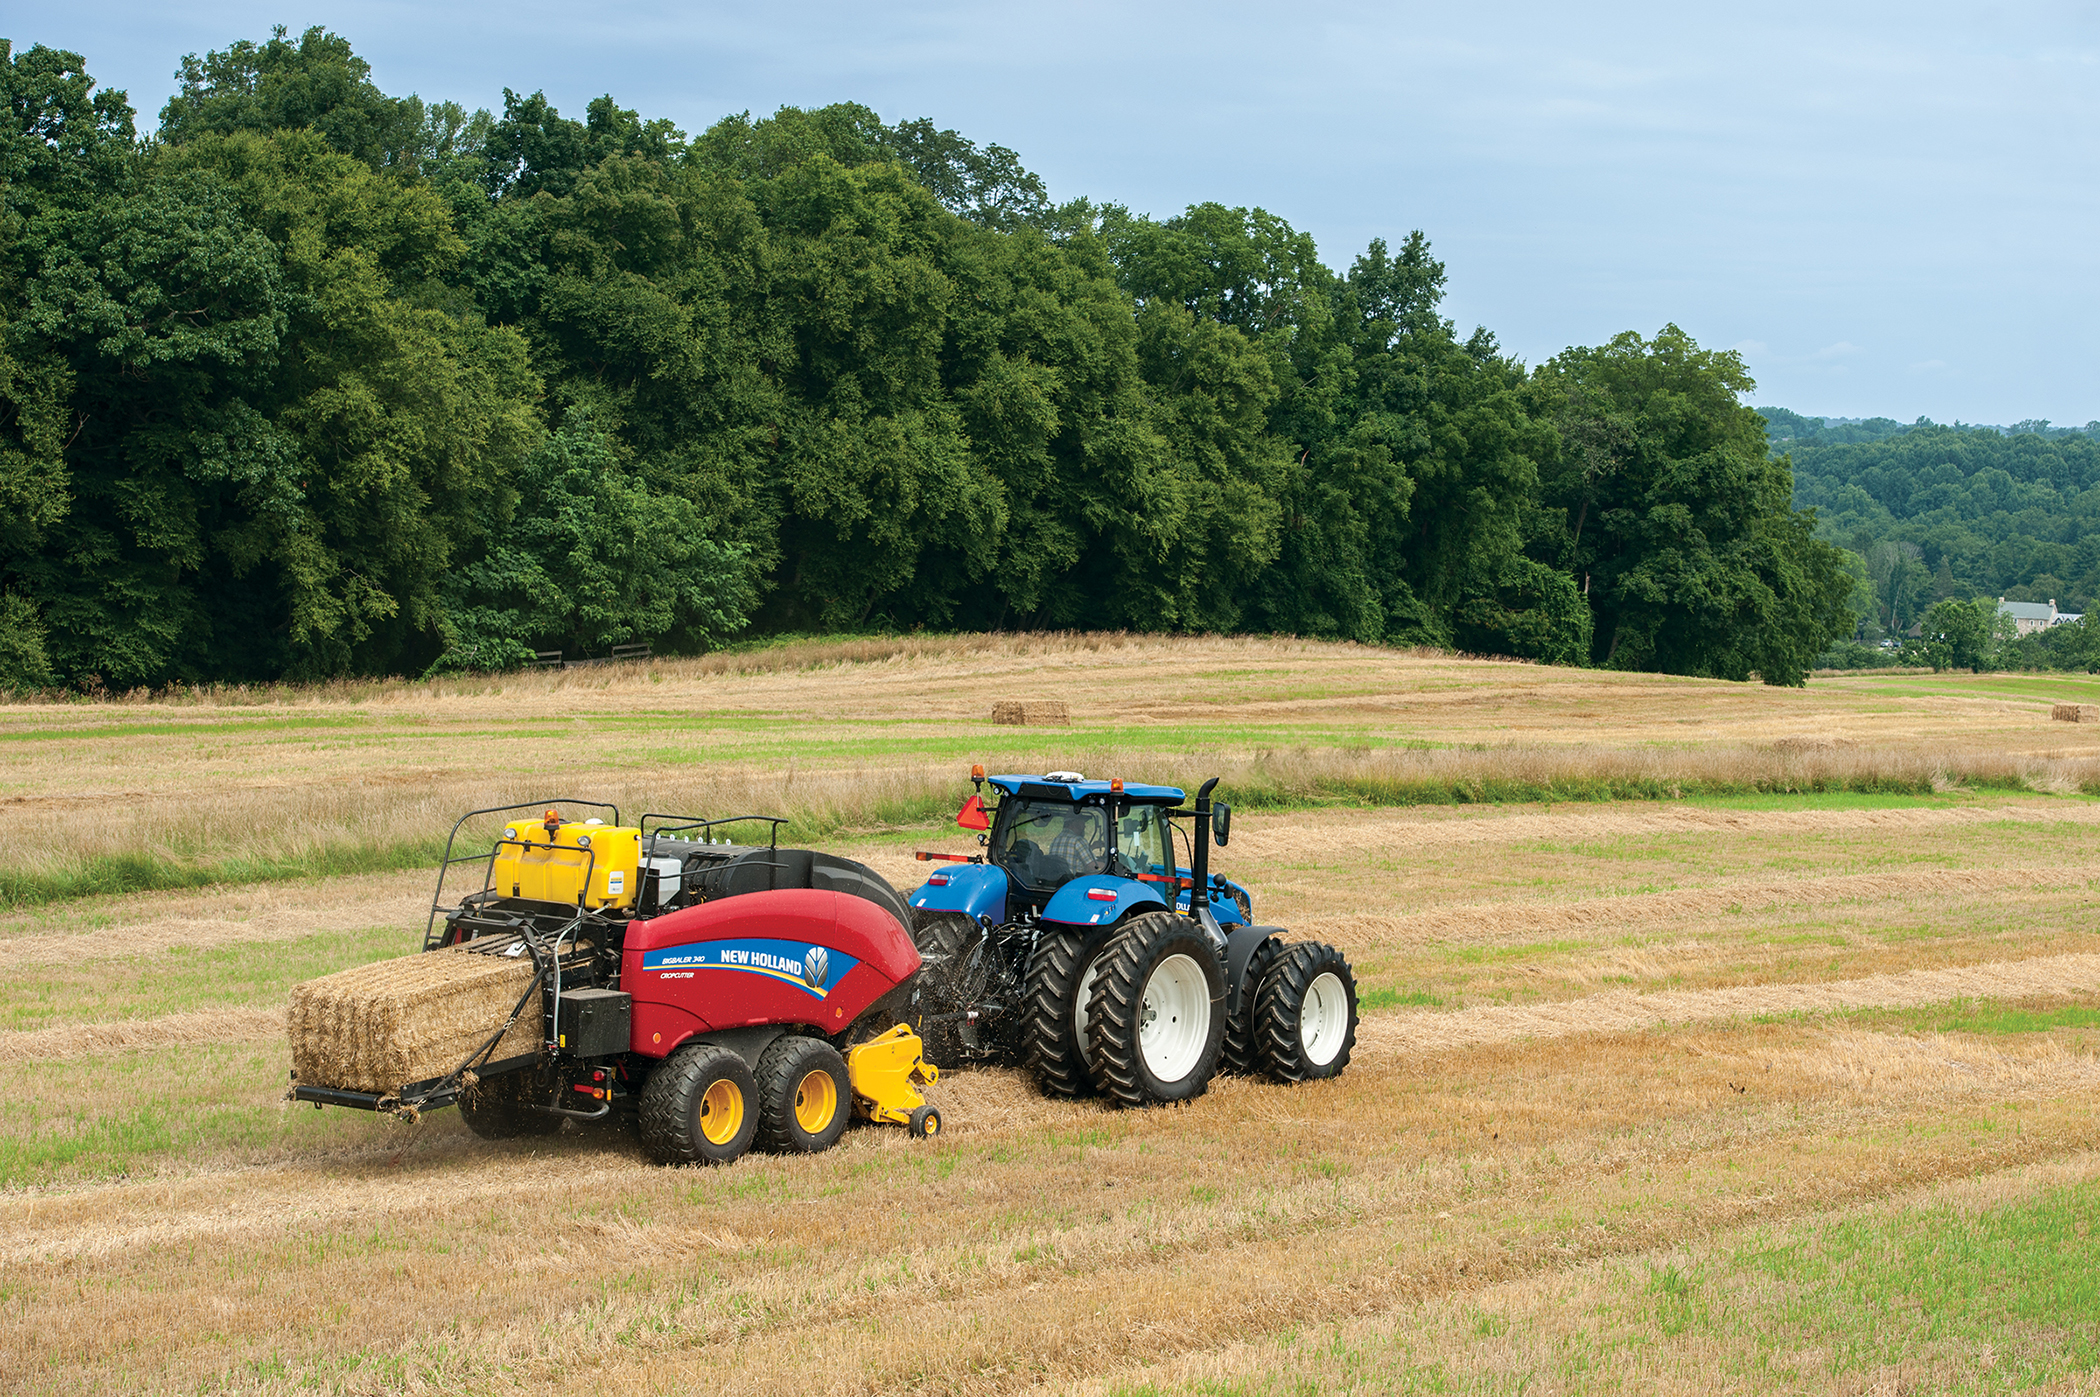 New Holland New T7 Series Tractors